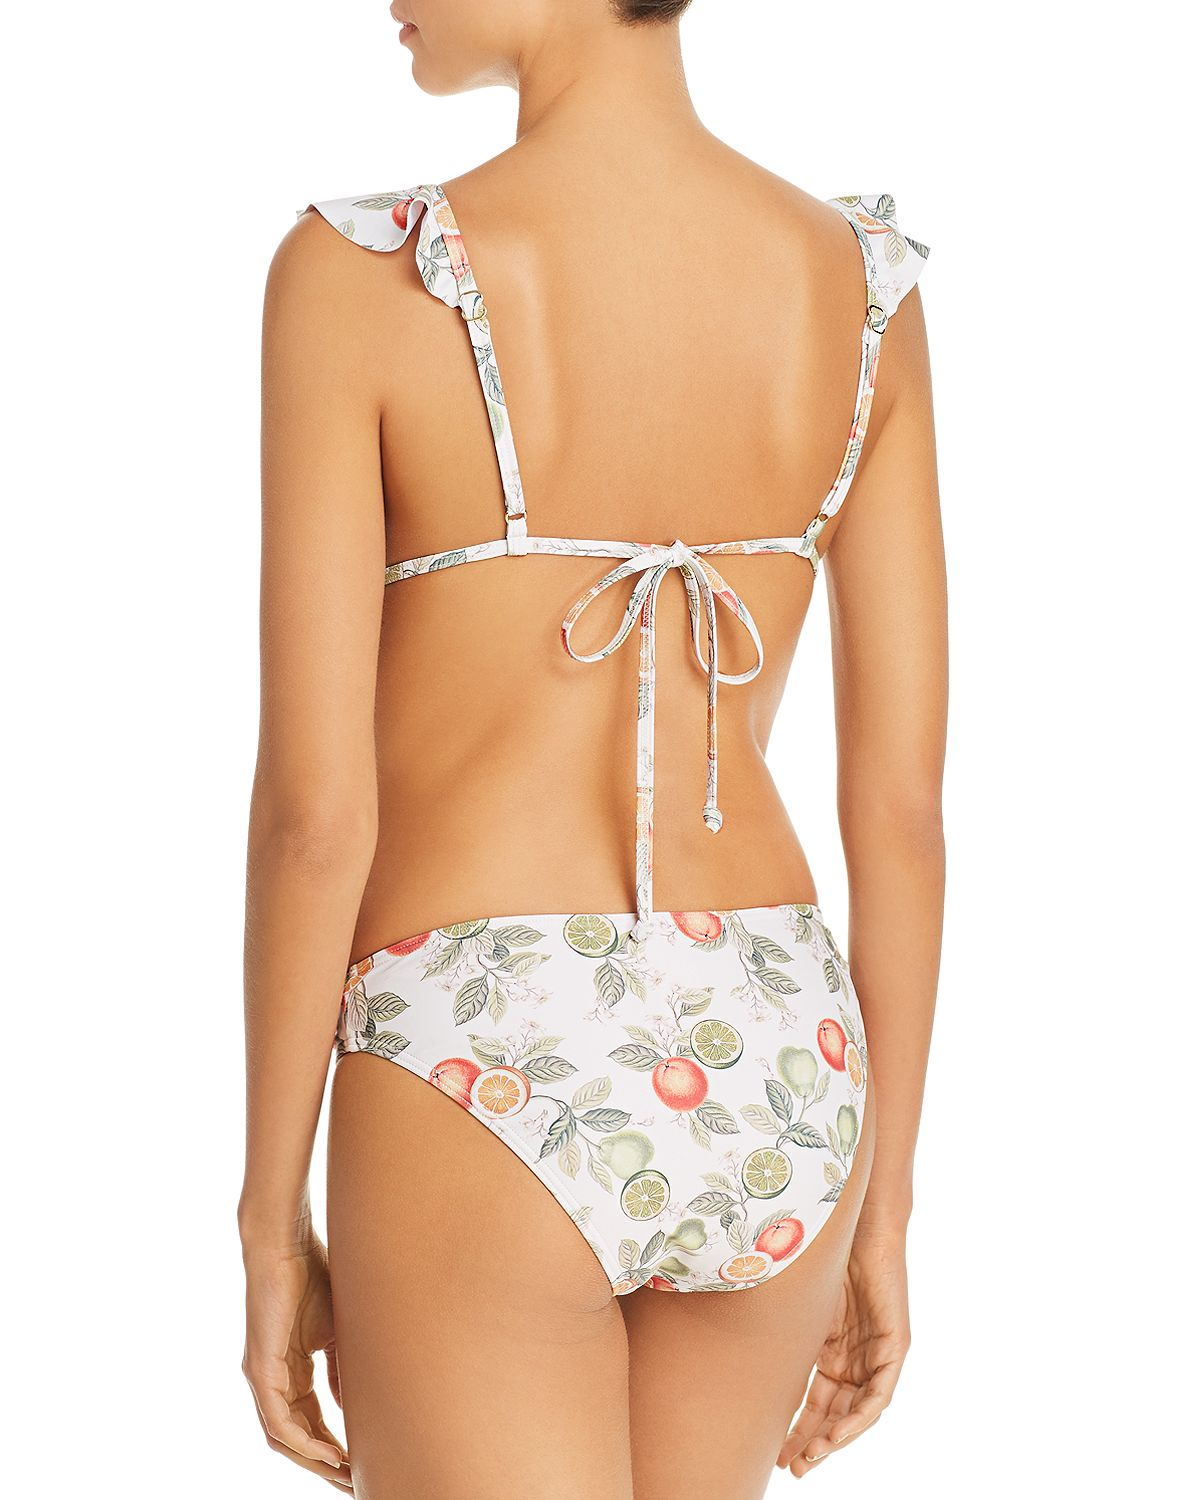 Model is wearing a multicoloured bikini top with spaghetti straps, the back features a simple tie closure. The fabric print has green and orange citrus fruits with greenery on a white background.